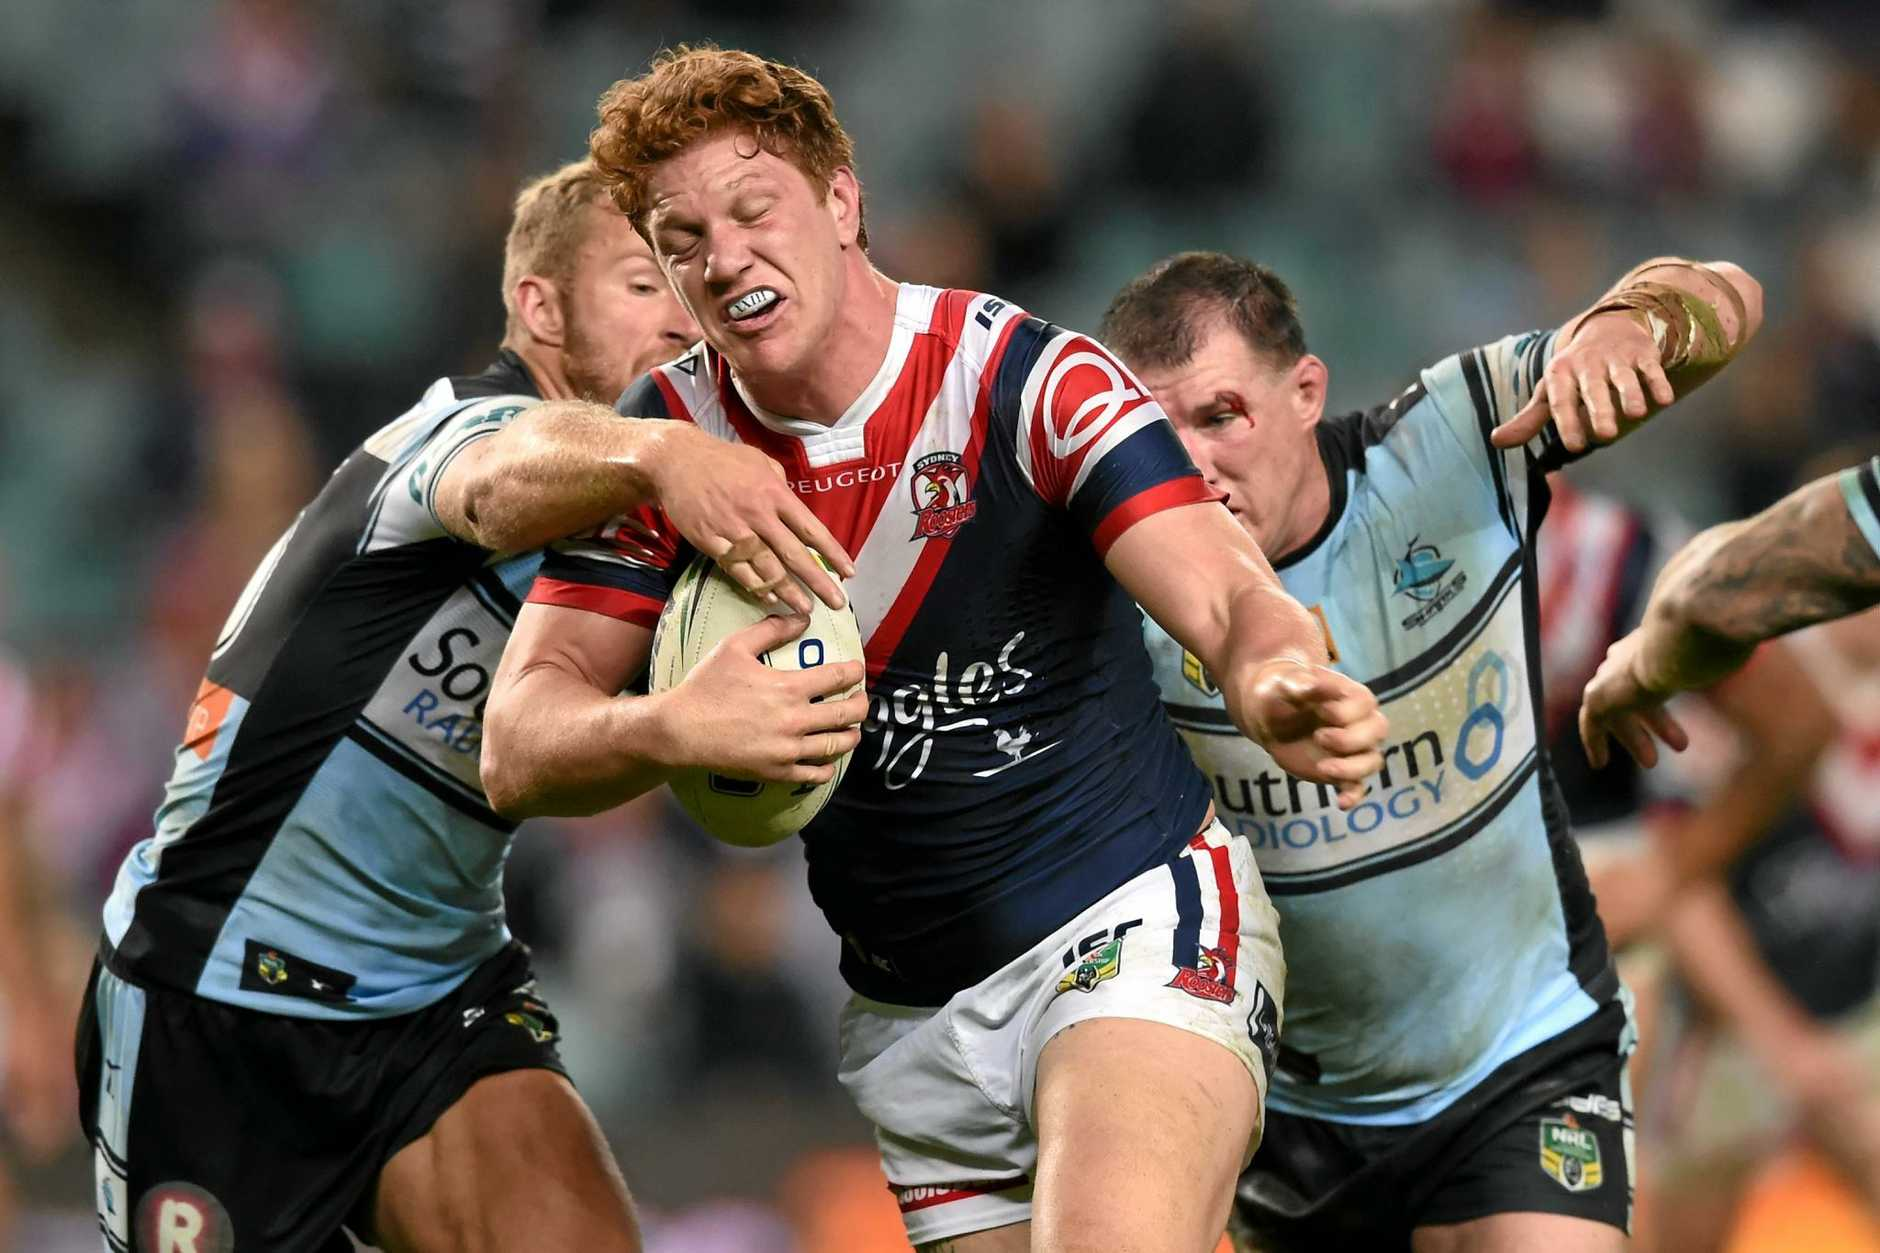 Dylan Napa of the Roosters is tackled by Paul Gallen (right) and Matt Prior of the Sharks last season.